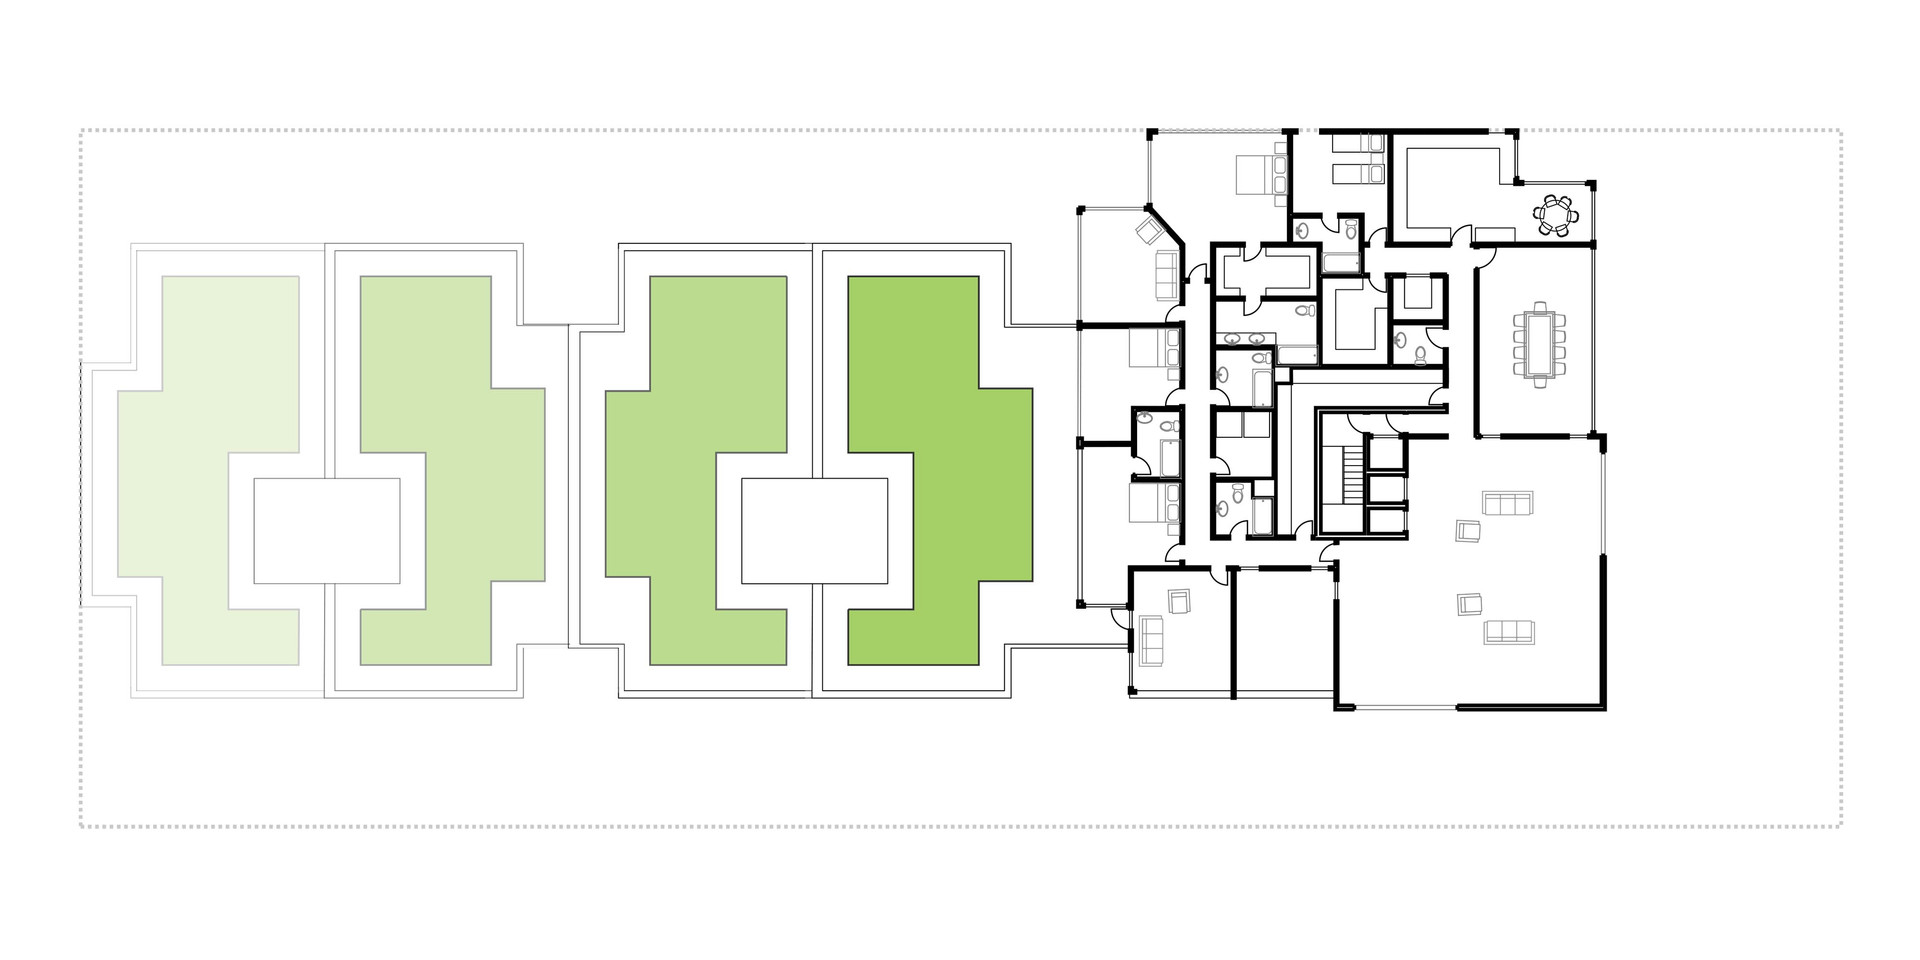 Lima Golf Tower Typical Plan 6